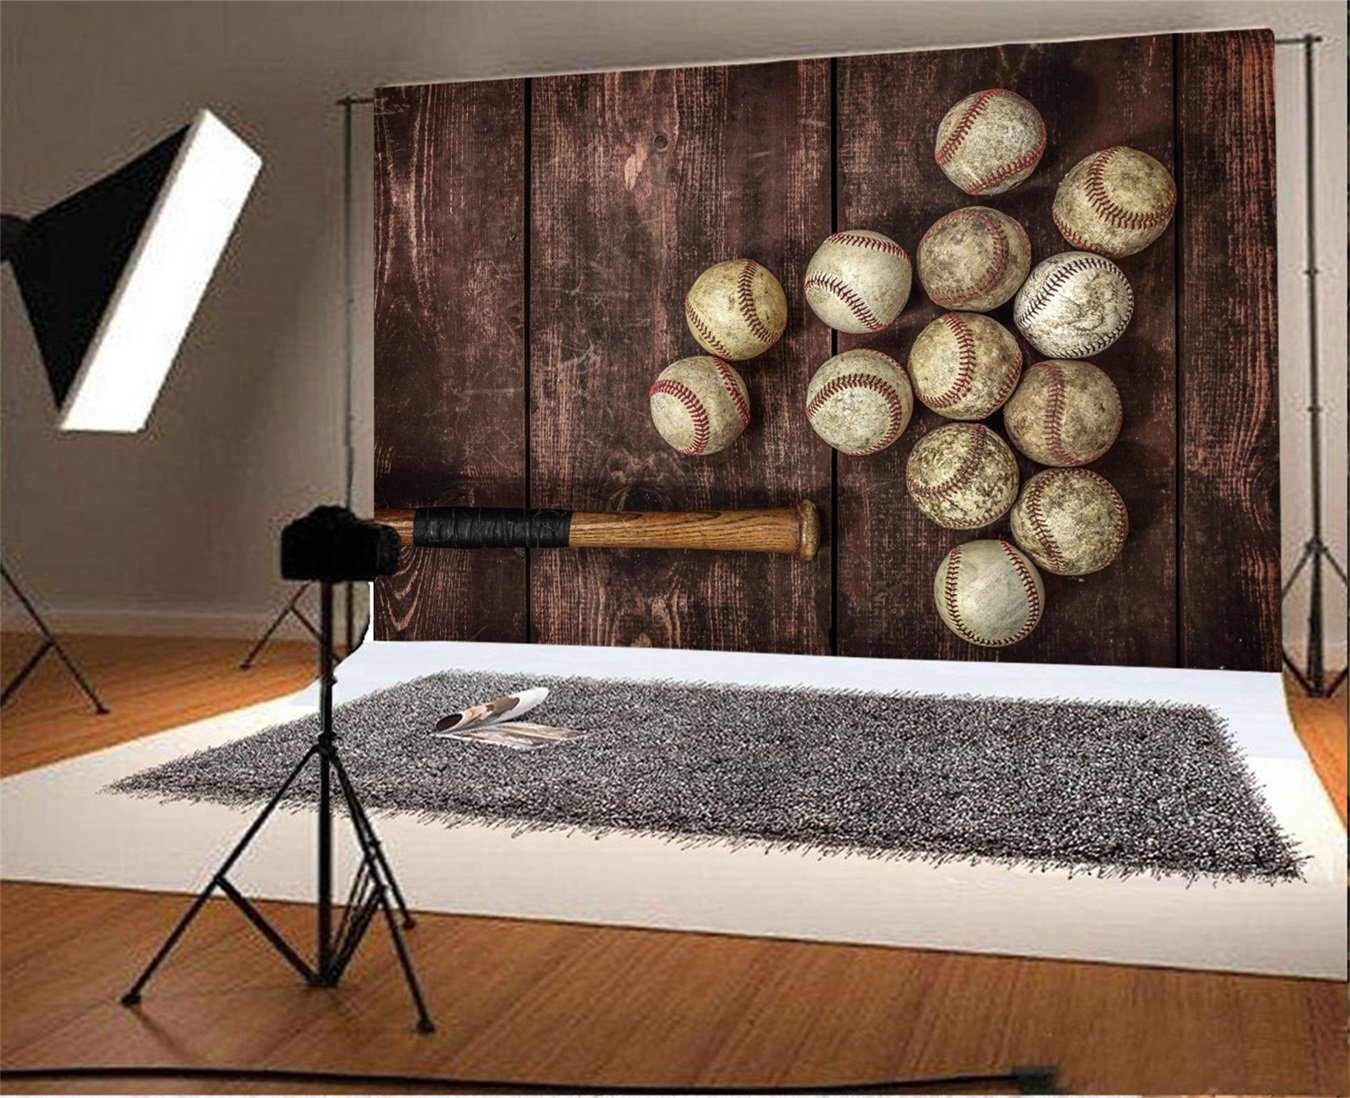 Details About Used Base Bat Wooden Floor Background 9x6ft Athelete Nostalgia Backdrops